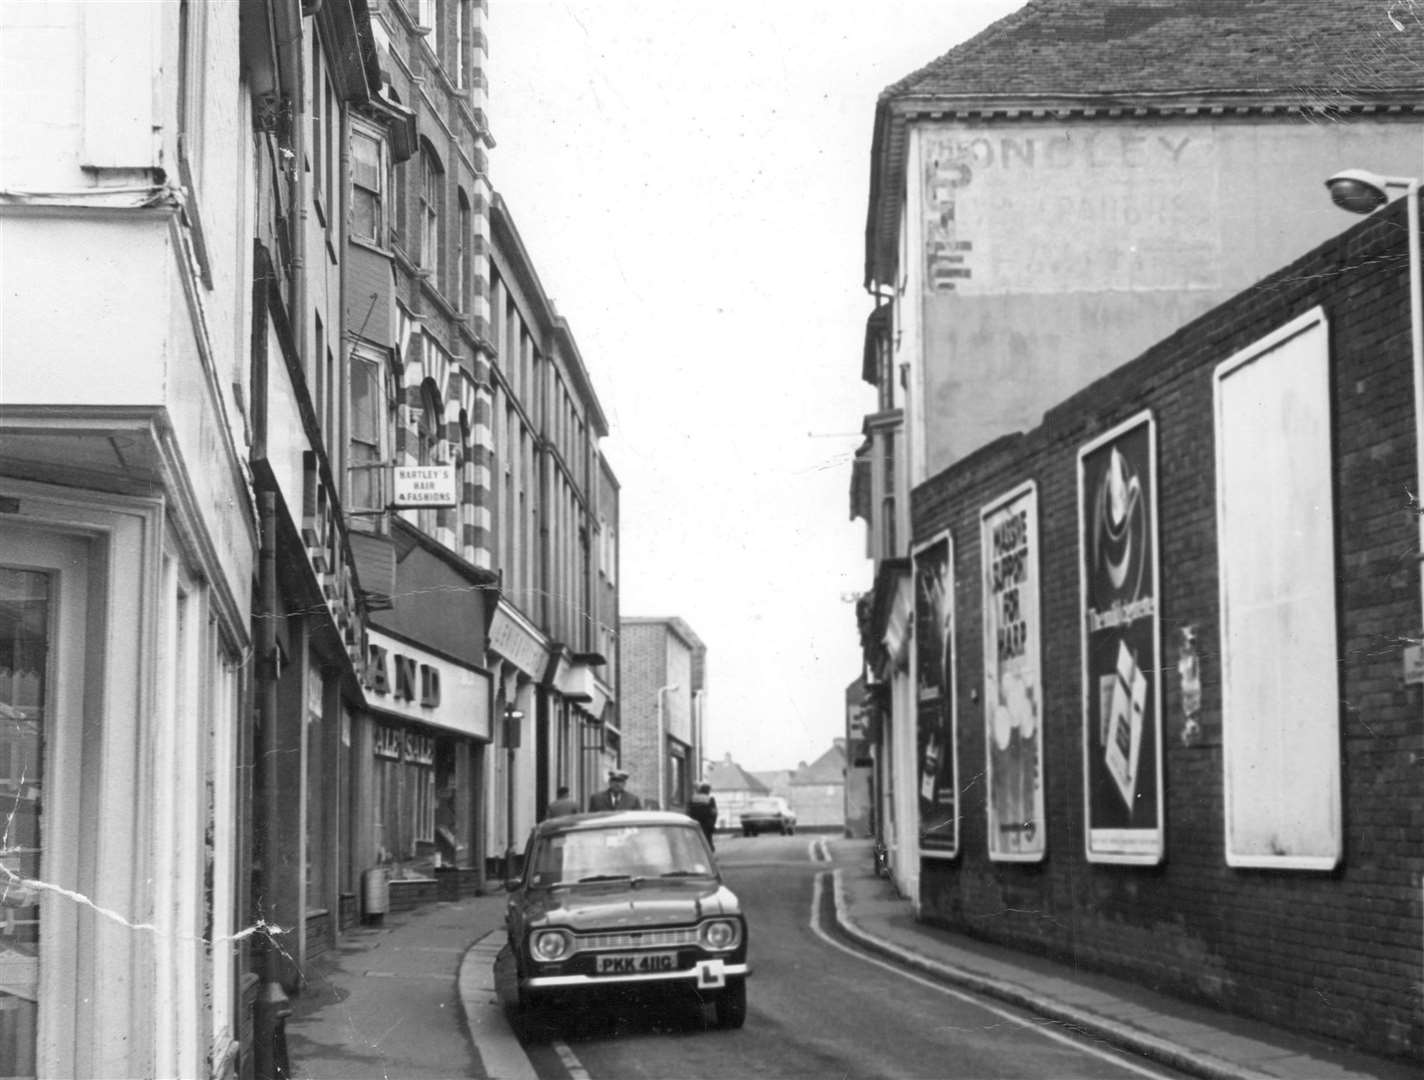 New Rents, 1972. A sentimental view showing New Rents 42 years ago, when the street was still dominated by much-missed department store Lewis and Hyland. H.J Davis the Pork butcher can be seen further along on the left with the one-time premise of the Central Pie Shop on the right. Forge Lane heading towards Gravel Walk can be seen in the distance. The junction of Hempsted Street is on the immediate left. Picture: Steve Salter